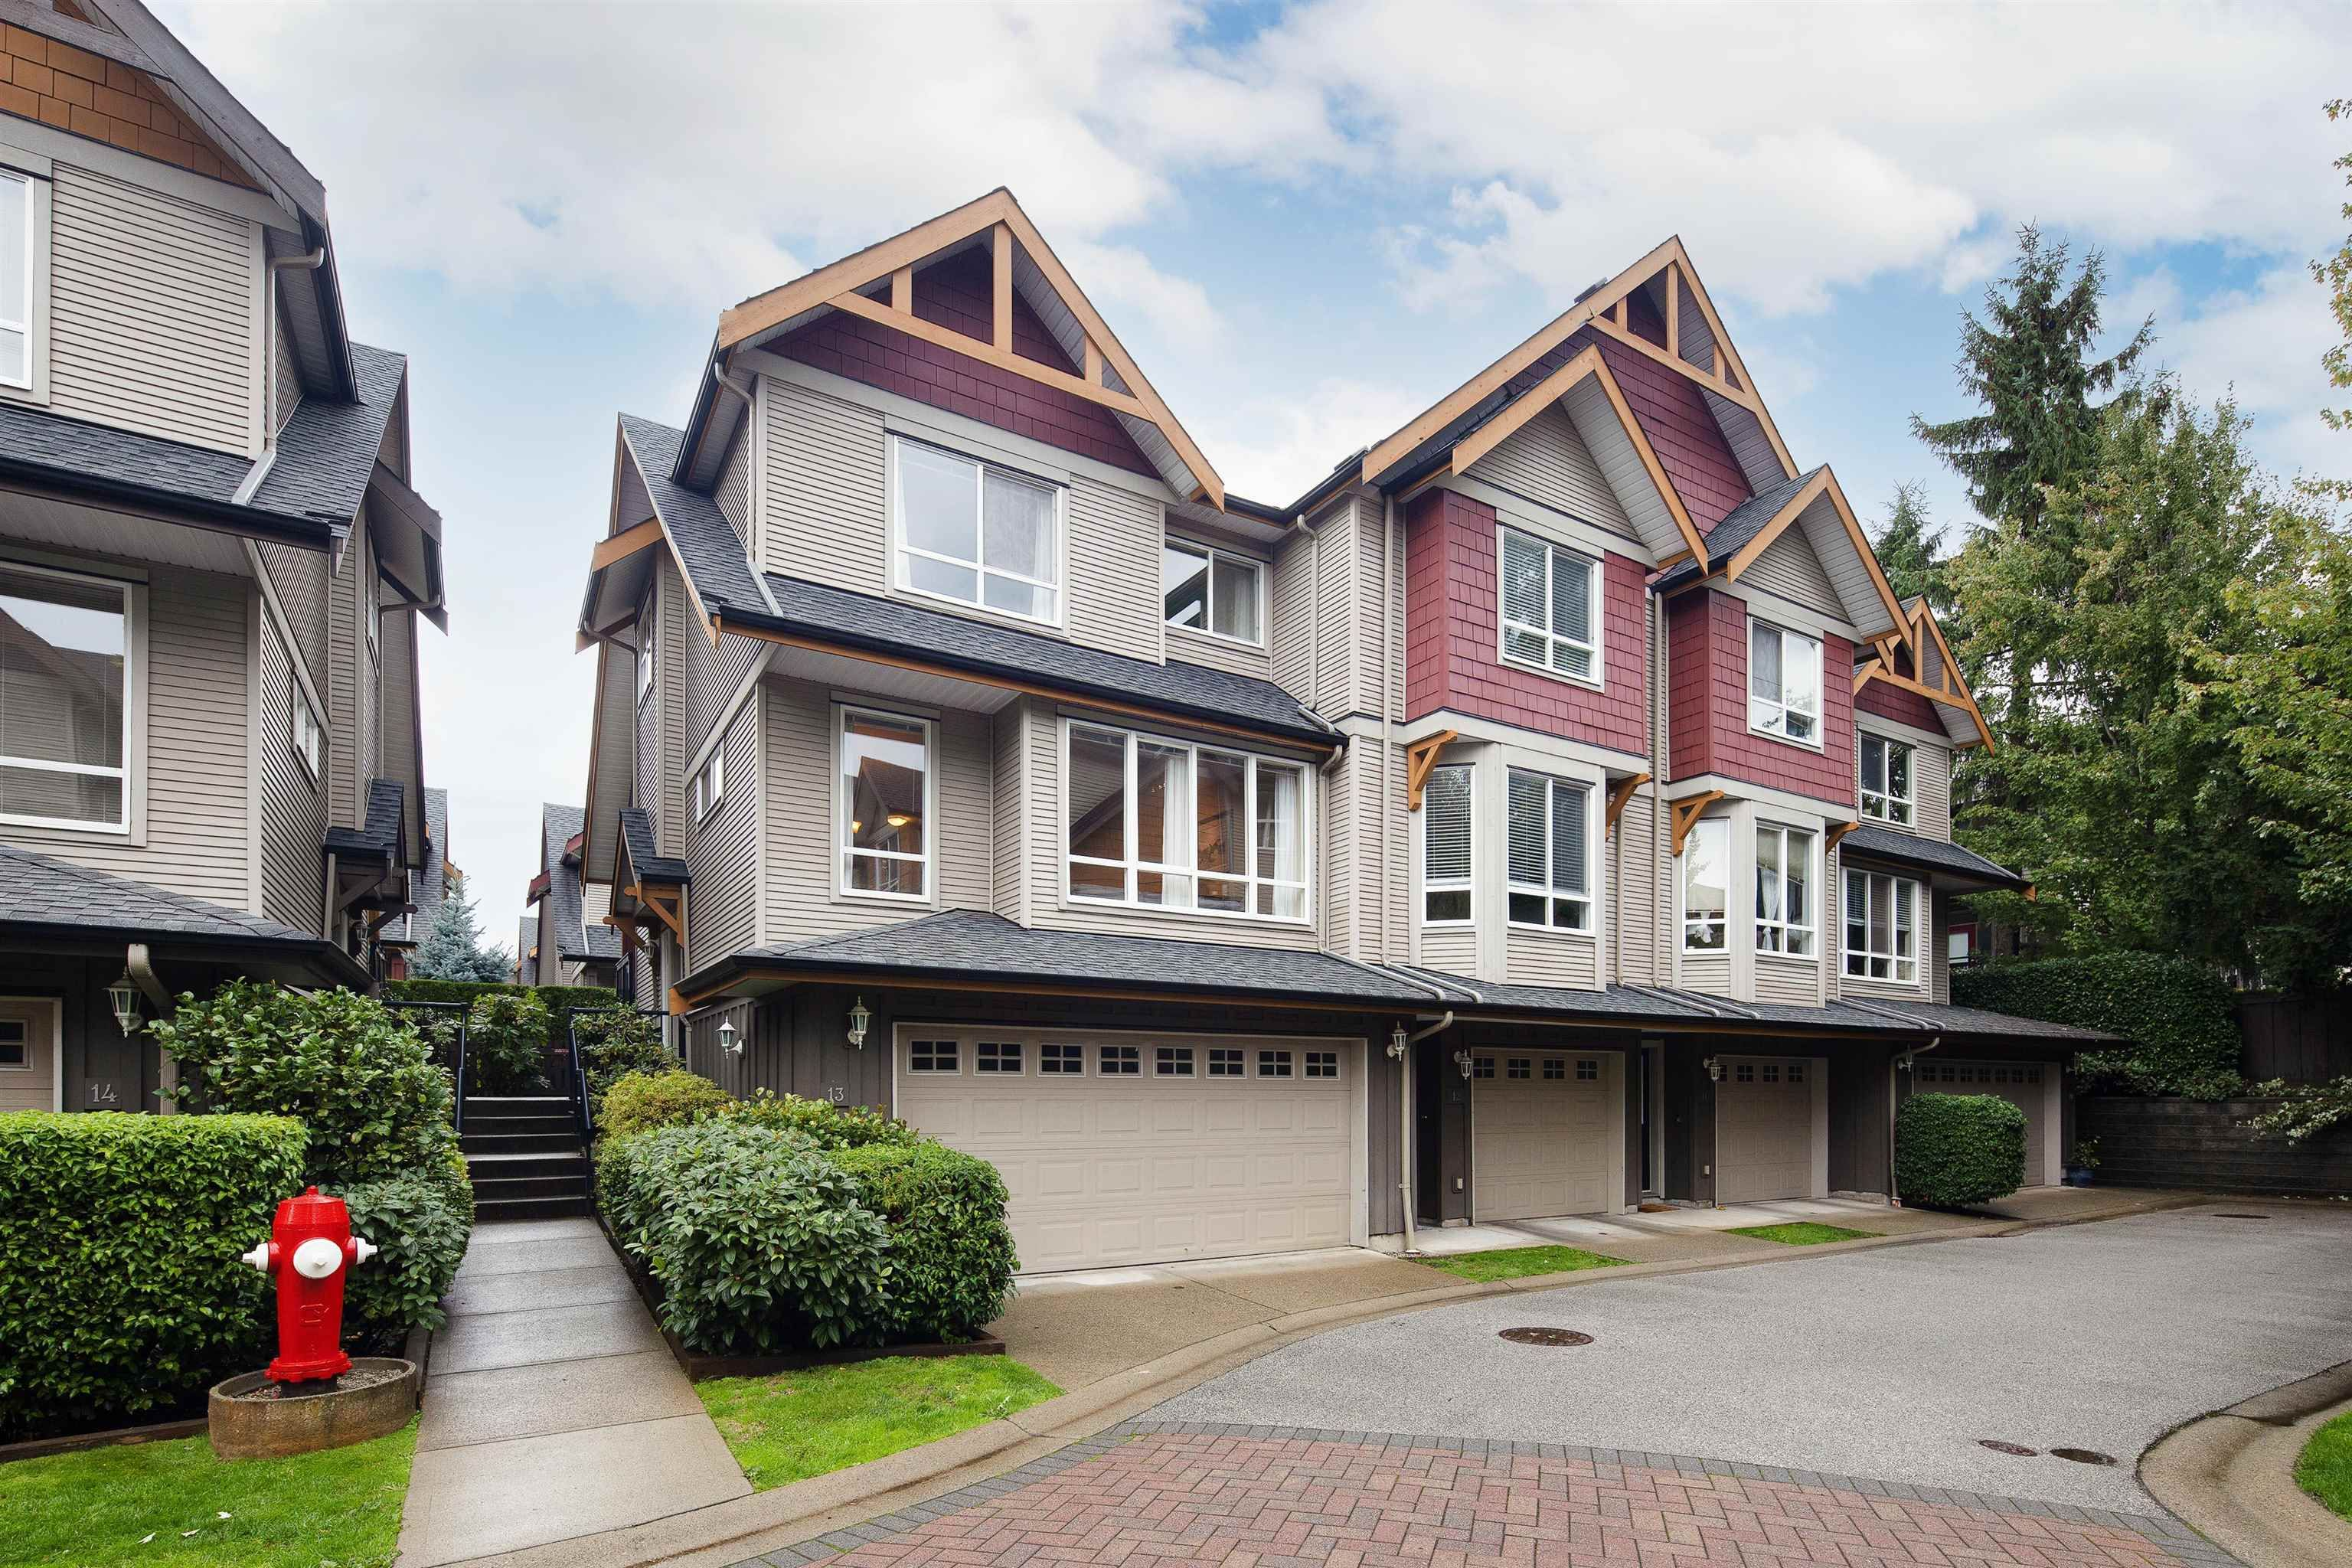 """Main Photo: 13 16789 60 Avenue in Surrey: Cloverdale BC Townhouse for sale in """"LAREDO"""" (Cloverdale)  : MLS®# R2623351"""